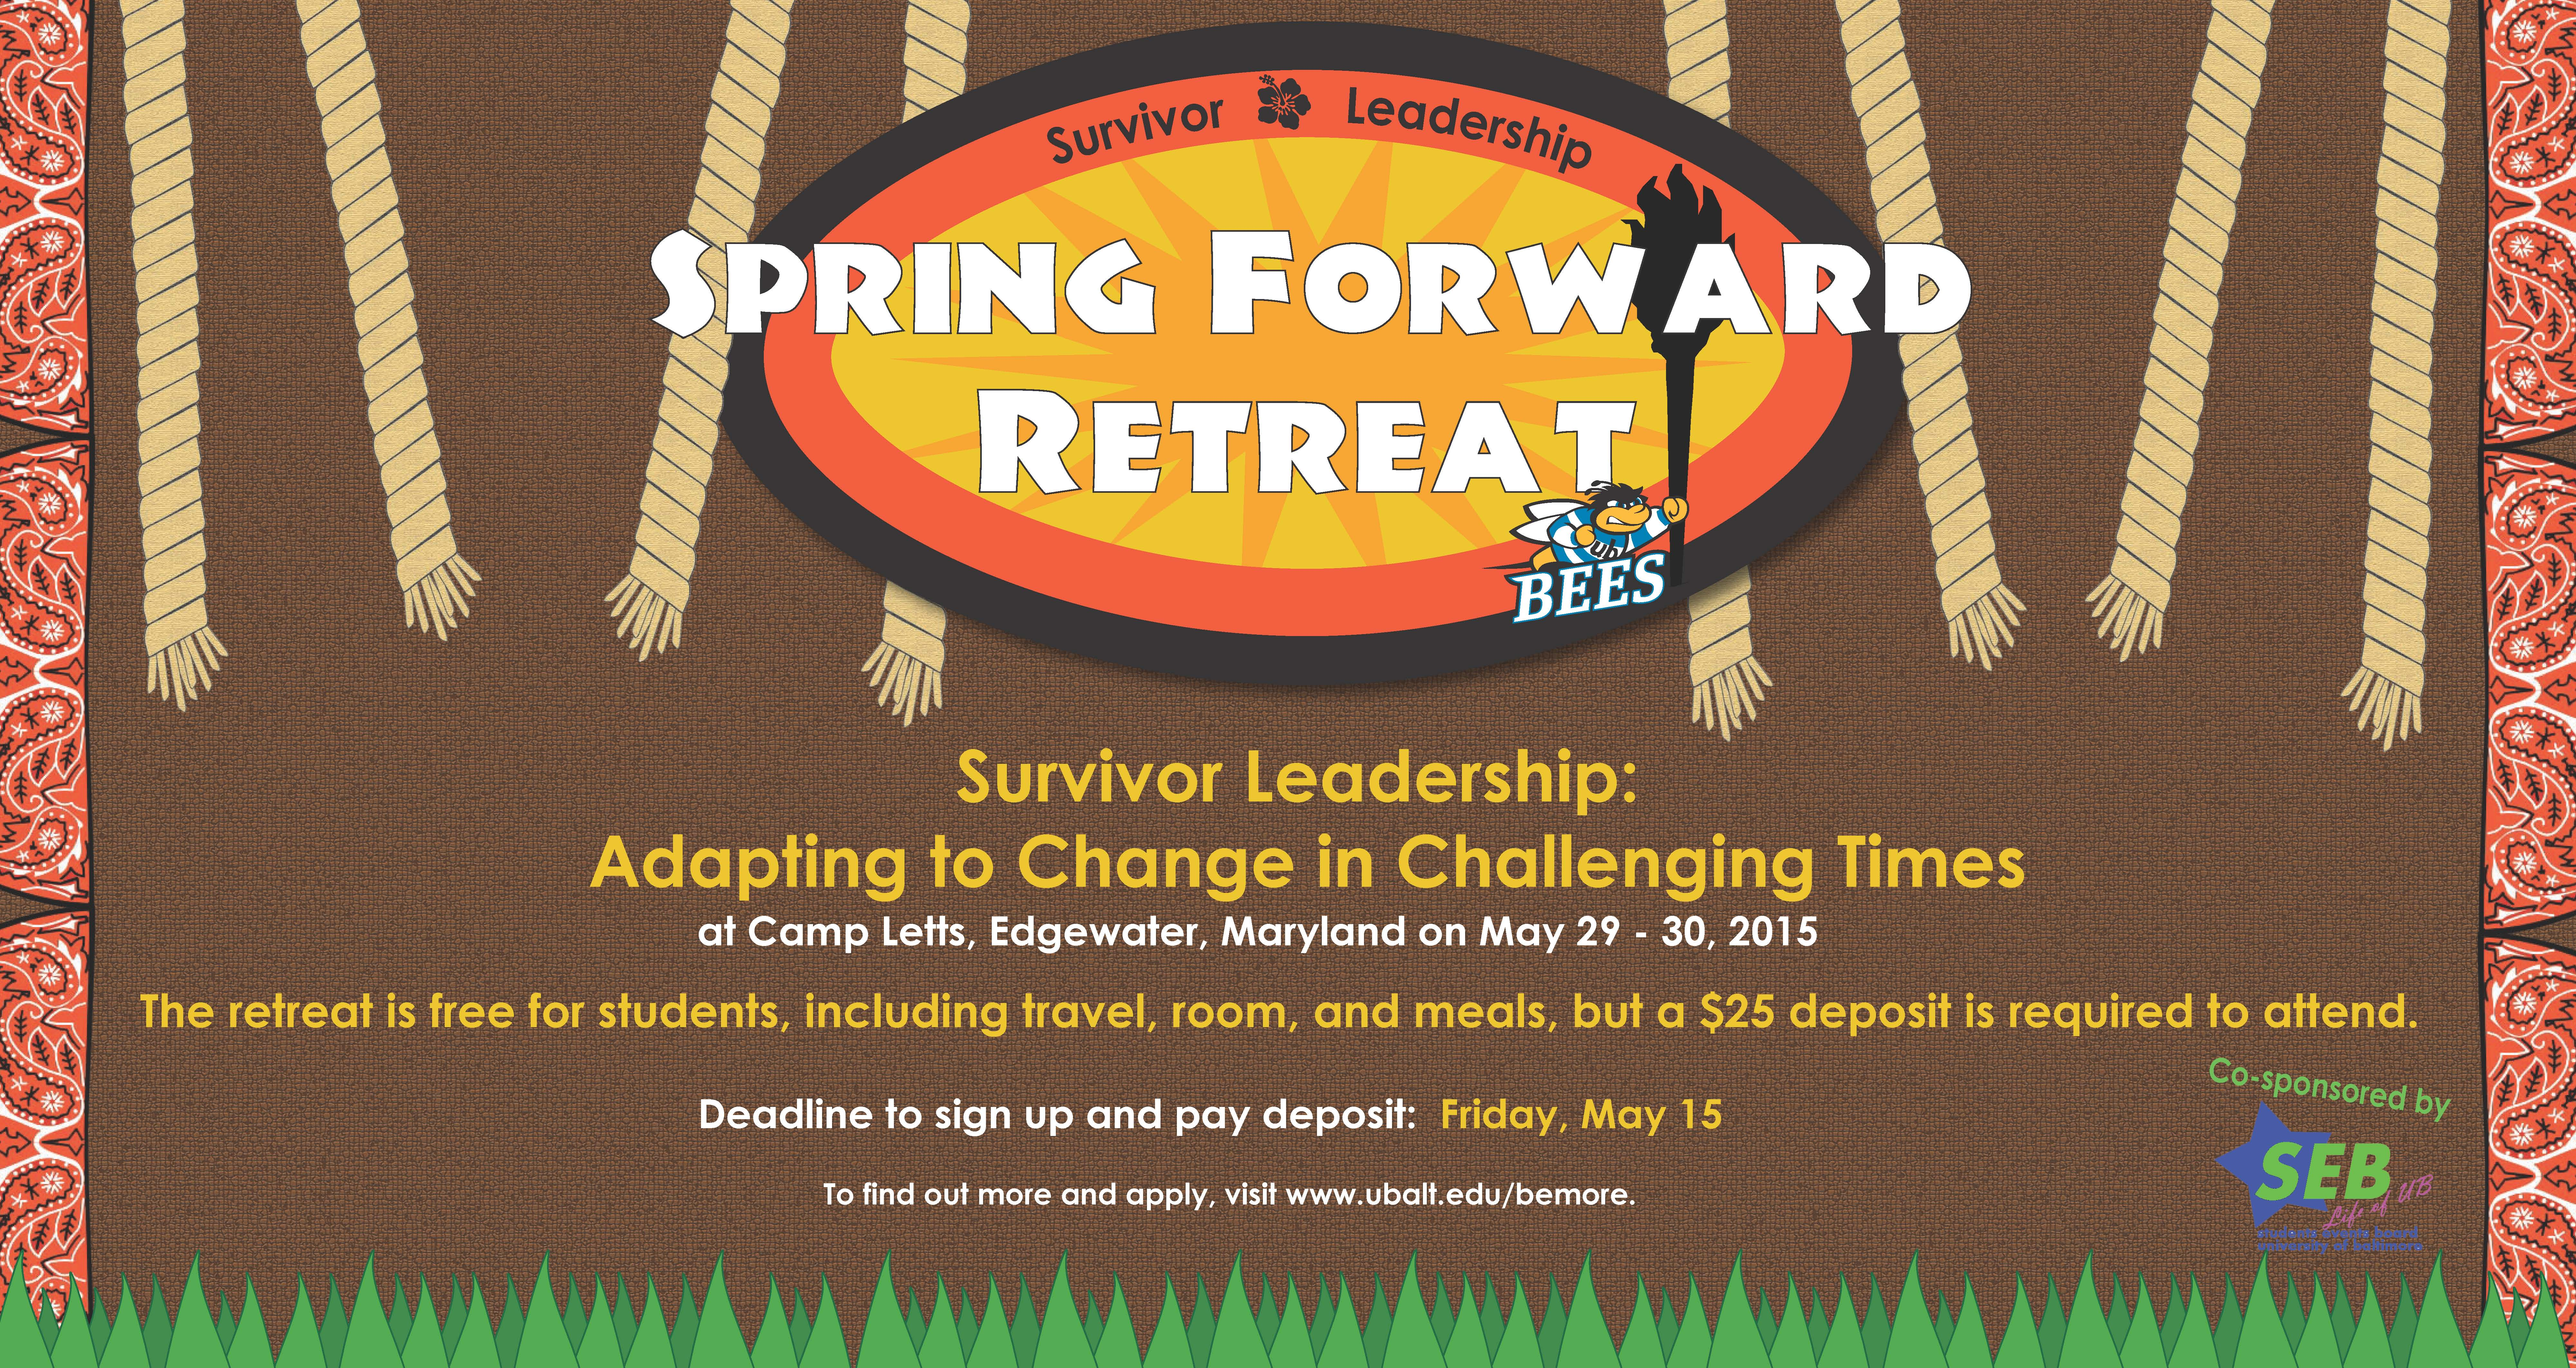 Spring Forward Retreat: Survivor Leadership